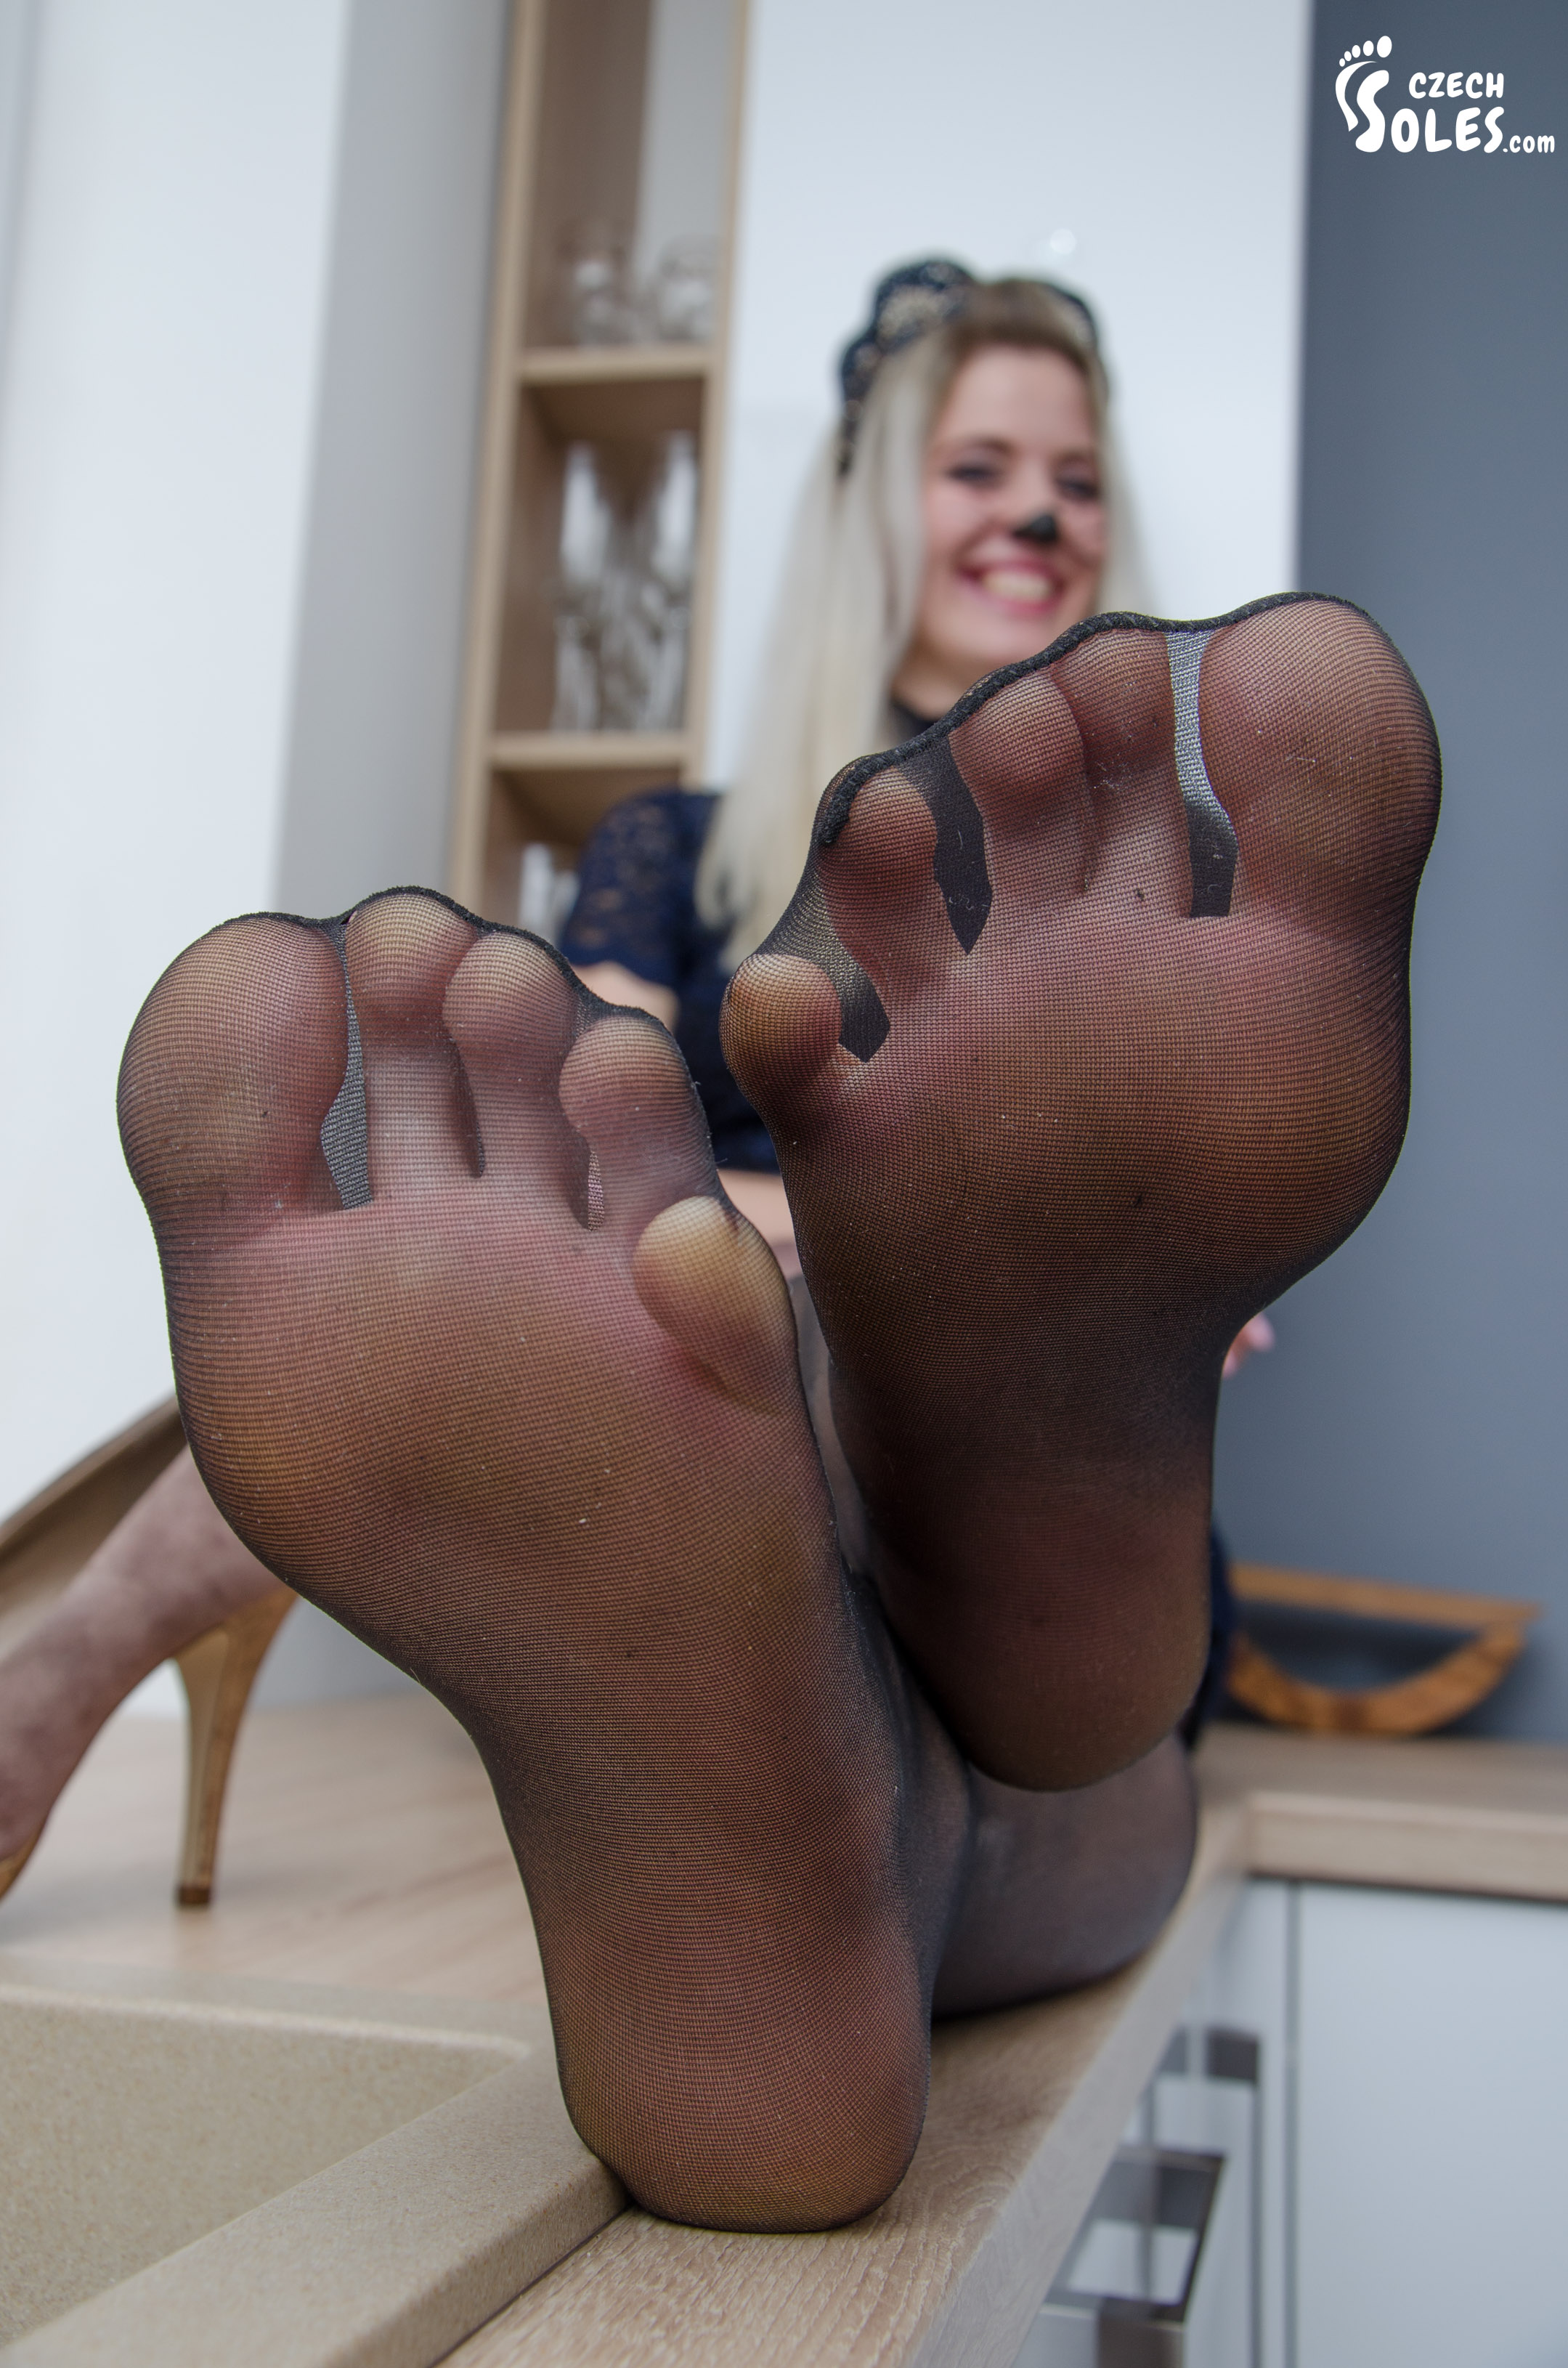 Feet fetish girls